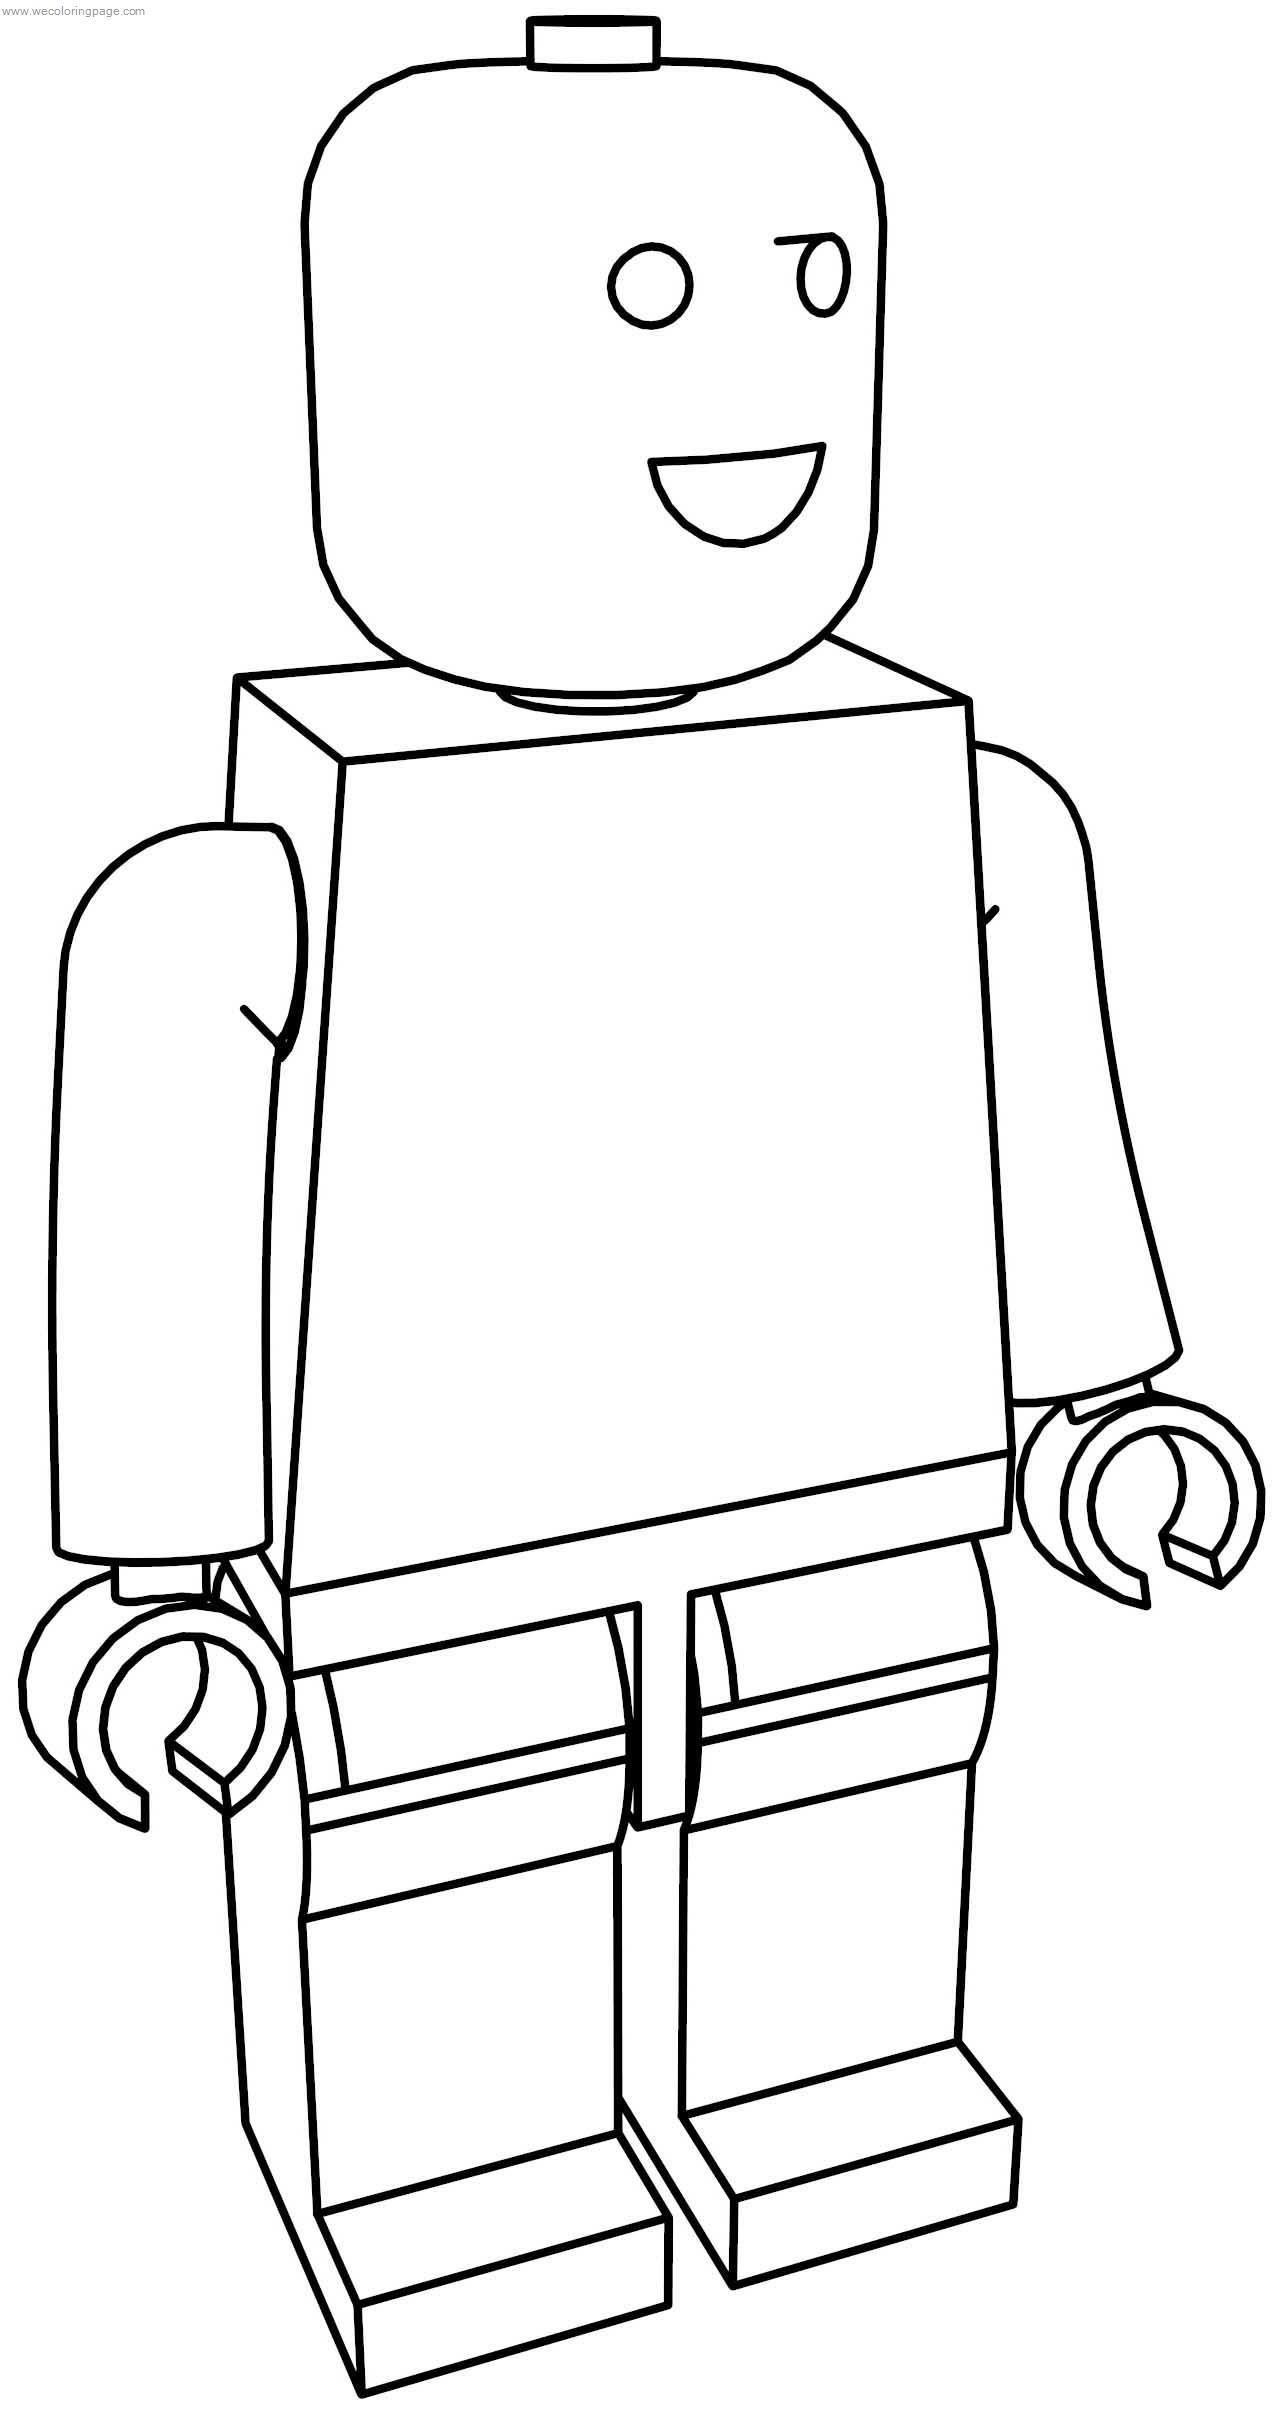 Normal Lego Man Coloring Page | Wecoloringpage.com